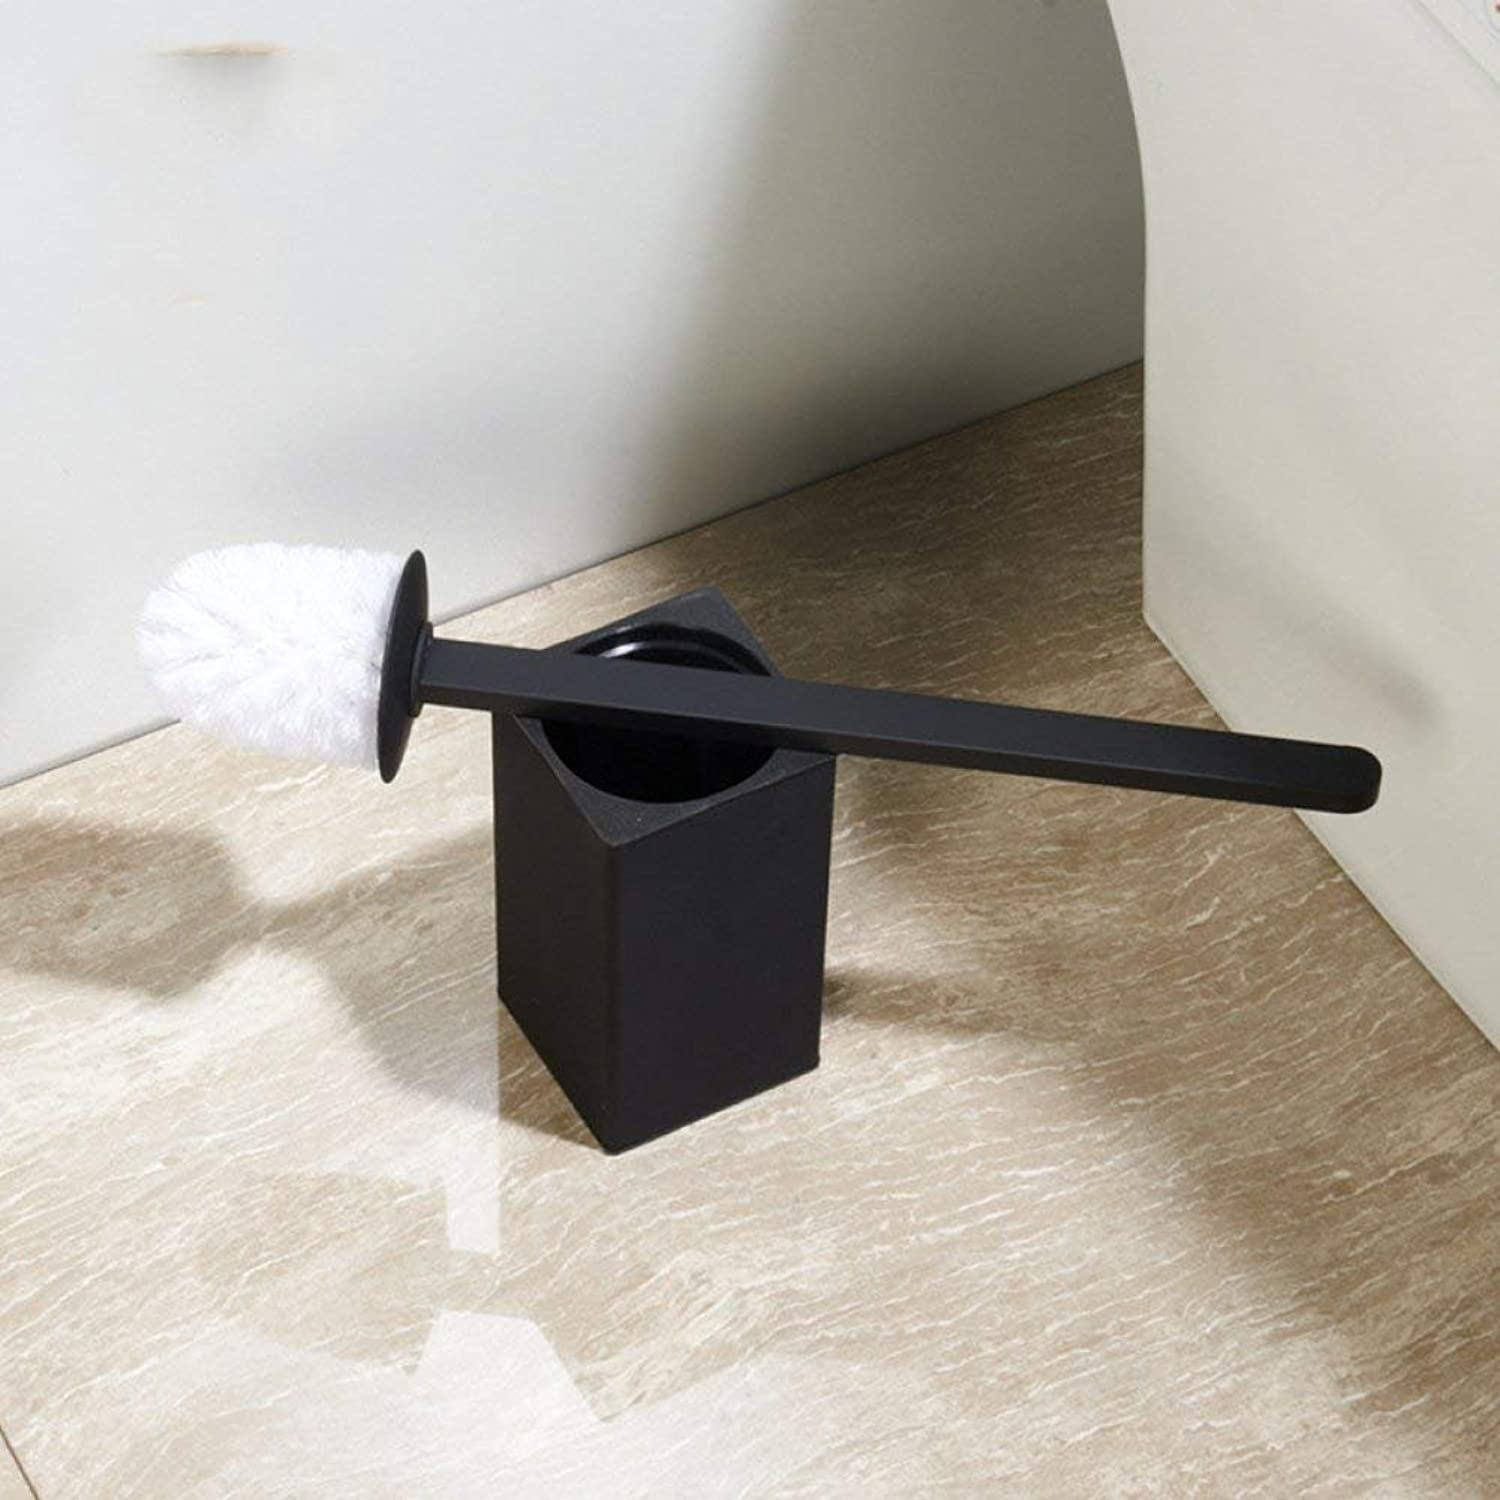 Simple WC Brush in The Stainless Steel Black parquet Floor WC Brush Accessories of Bathroom All Brushes WC Rubber Paint